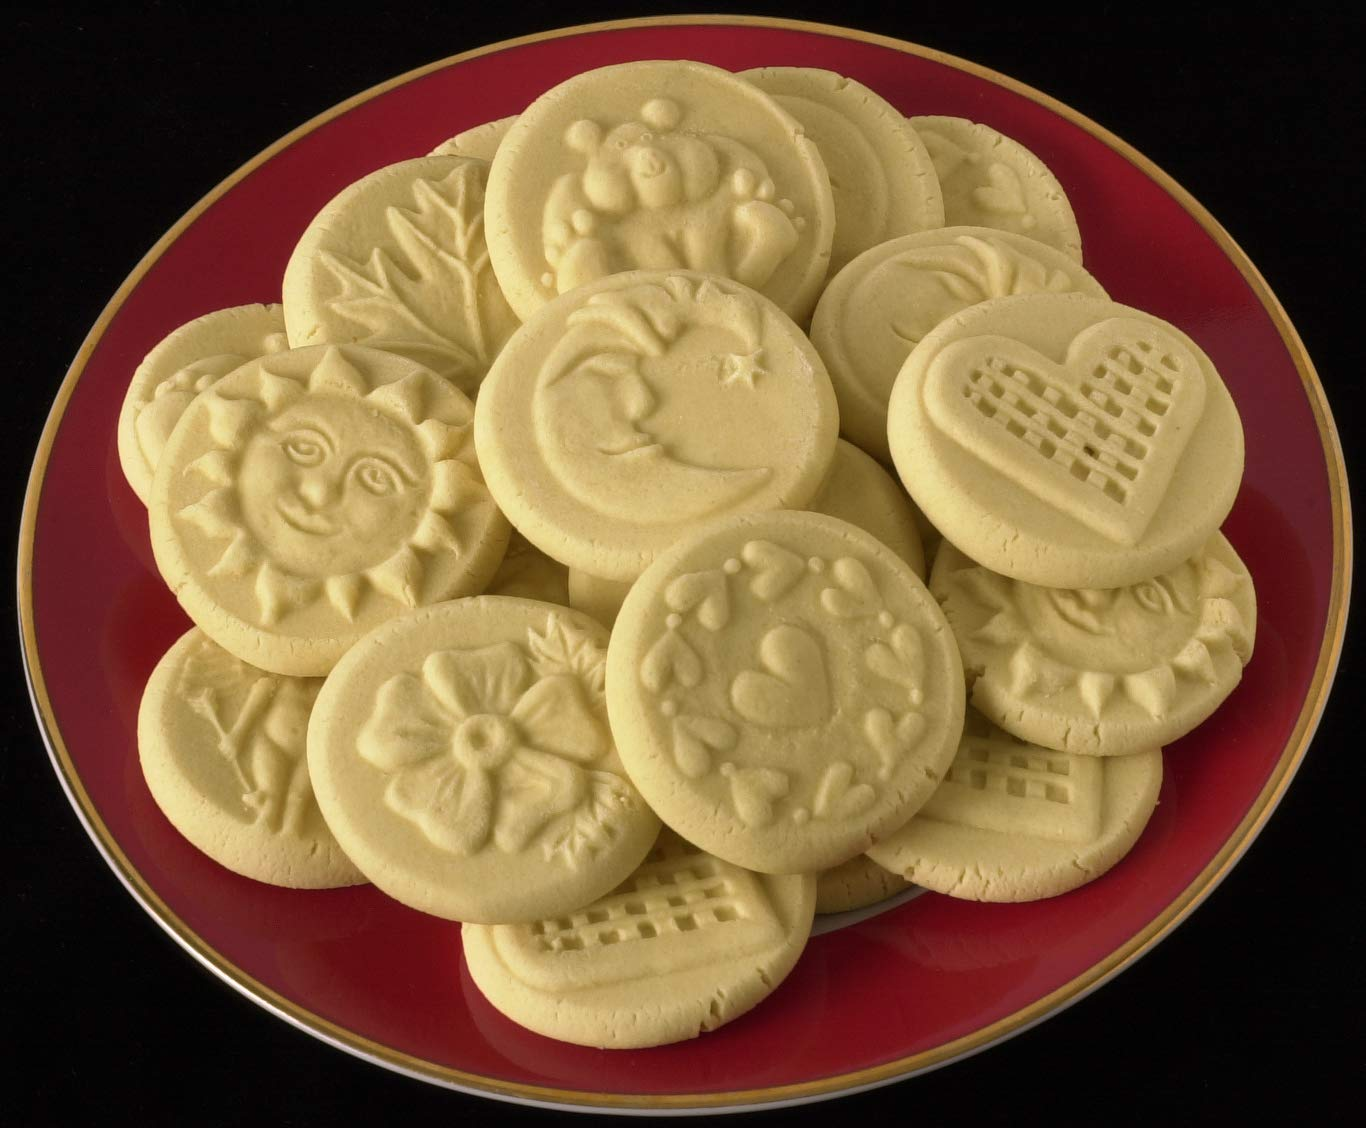 JBK Pottery Terra Cotta Cookie Stamps (3 Piece Love Set)